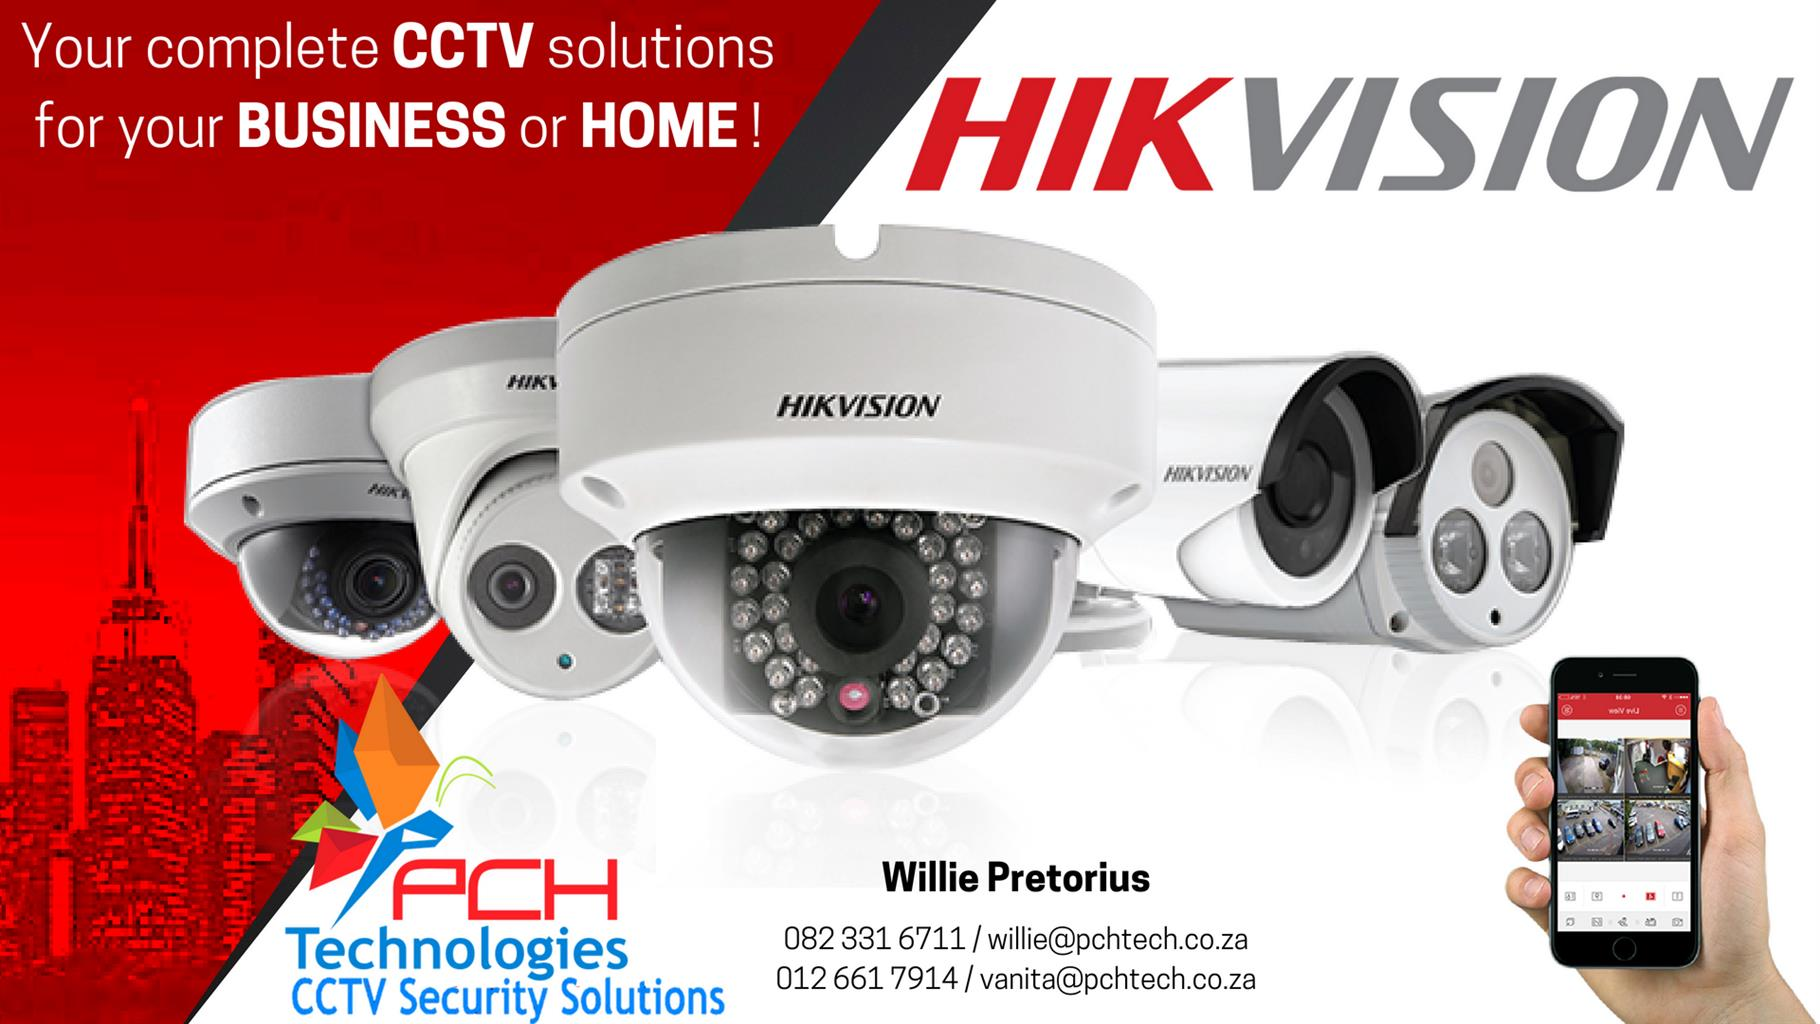 INSTALLERS OF HIKVISION CCTV SYSTEMS IN YOUR HOME OR BUSINESS.